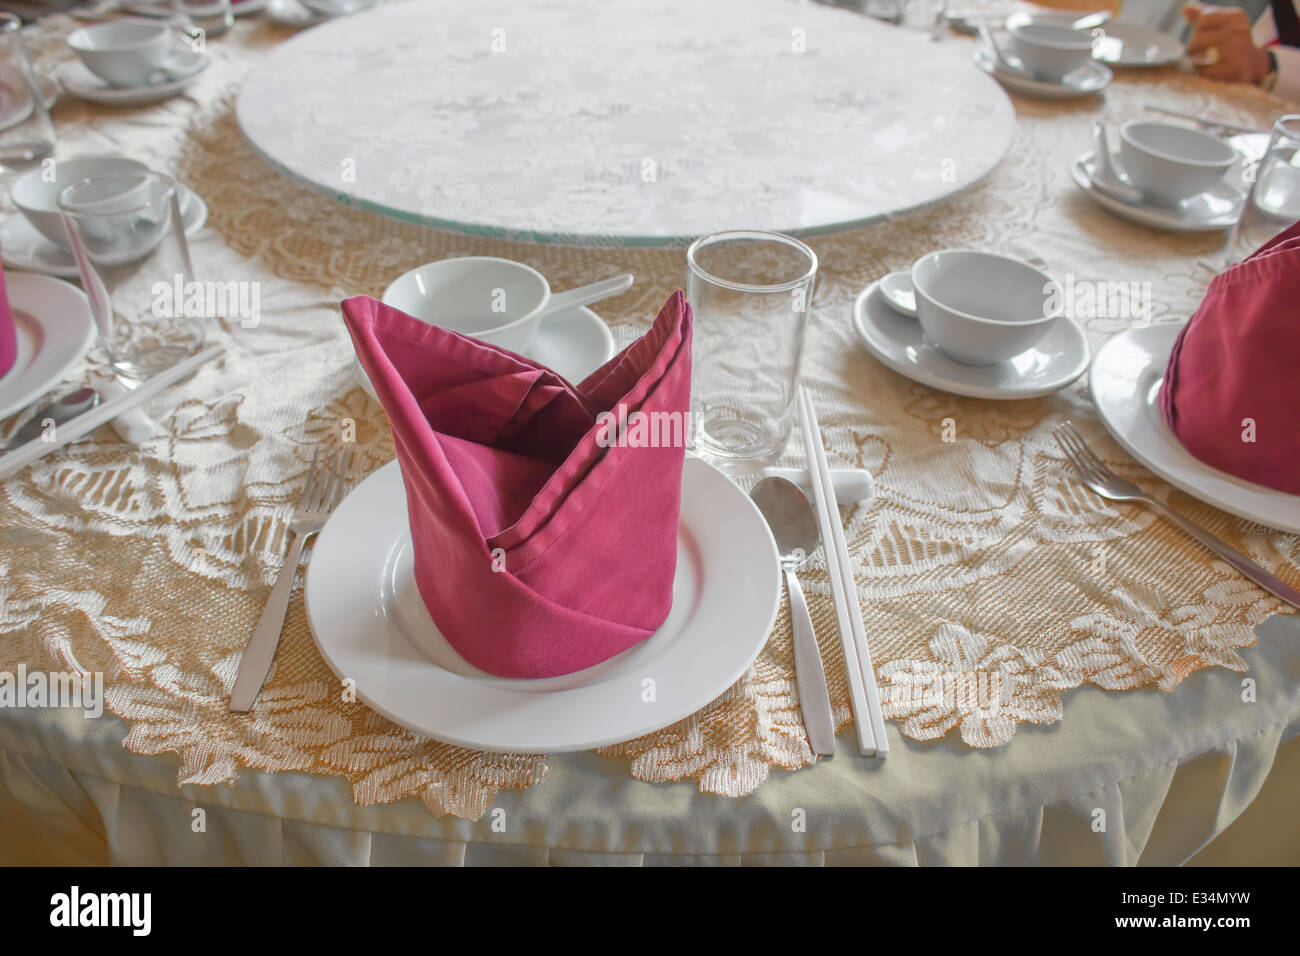 dining table - Stock Image